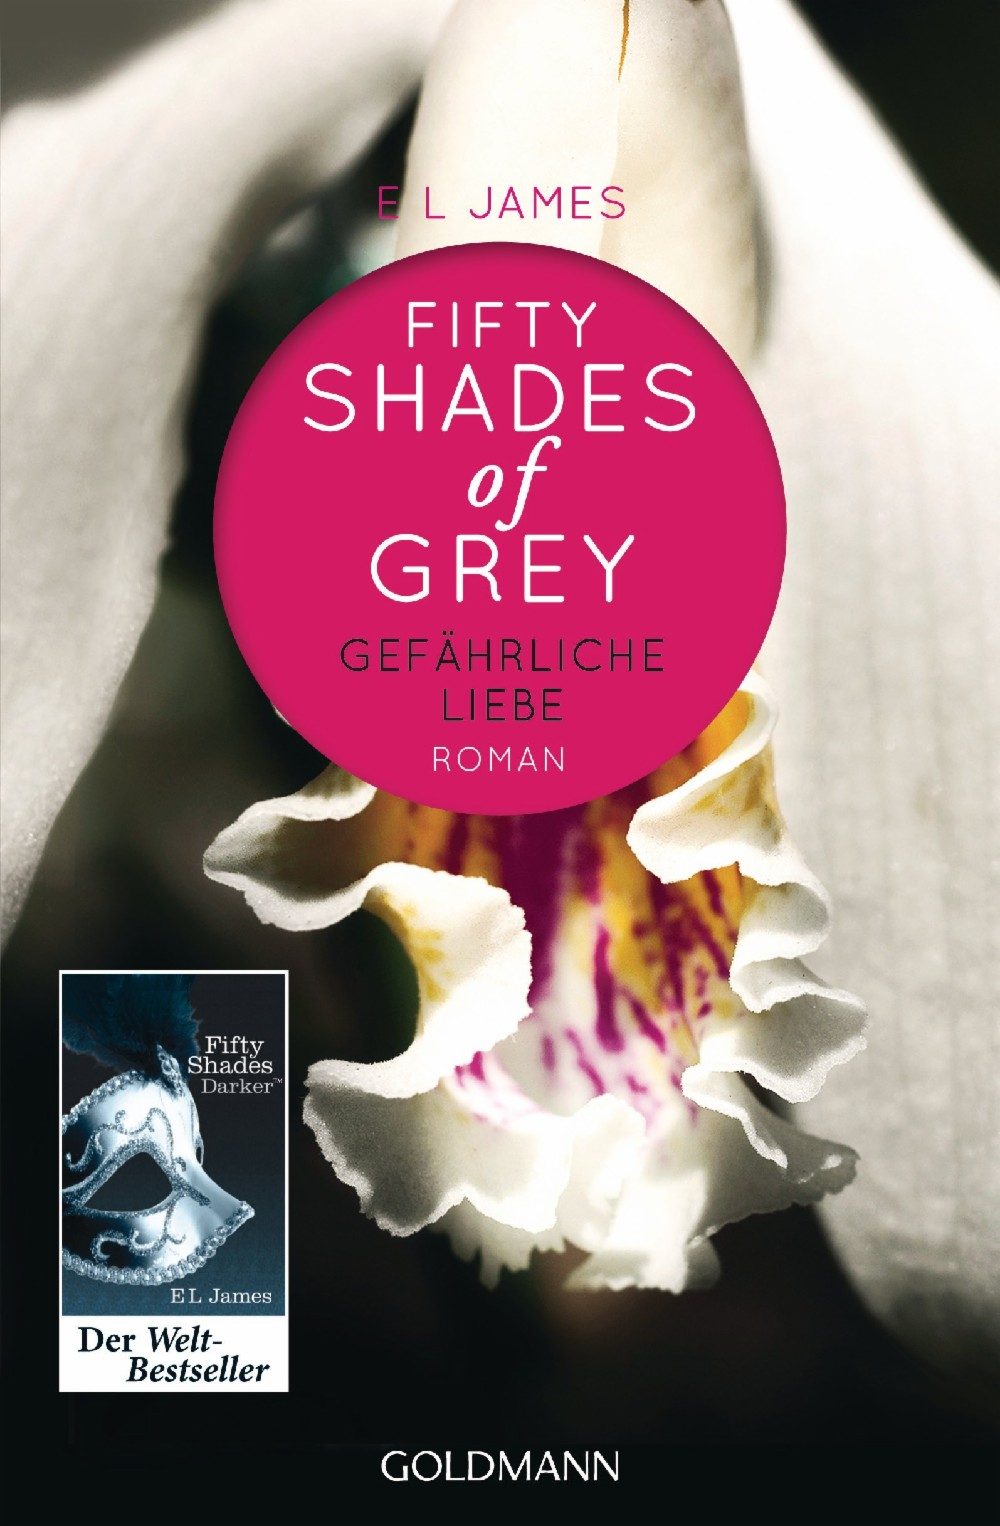 https://www.randomhouse.de/Paperback/Fifty-Shades-of-Grey-Gefaehrliche-Liebe/E-L-James/Goldmann-TB/e420950.rhd